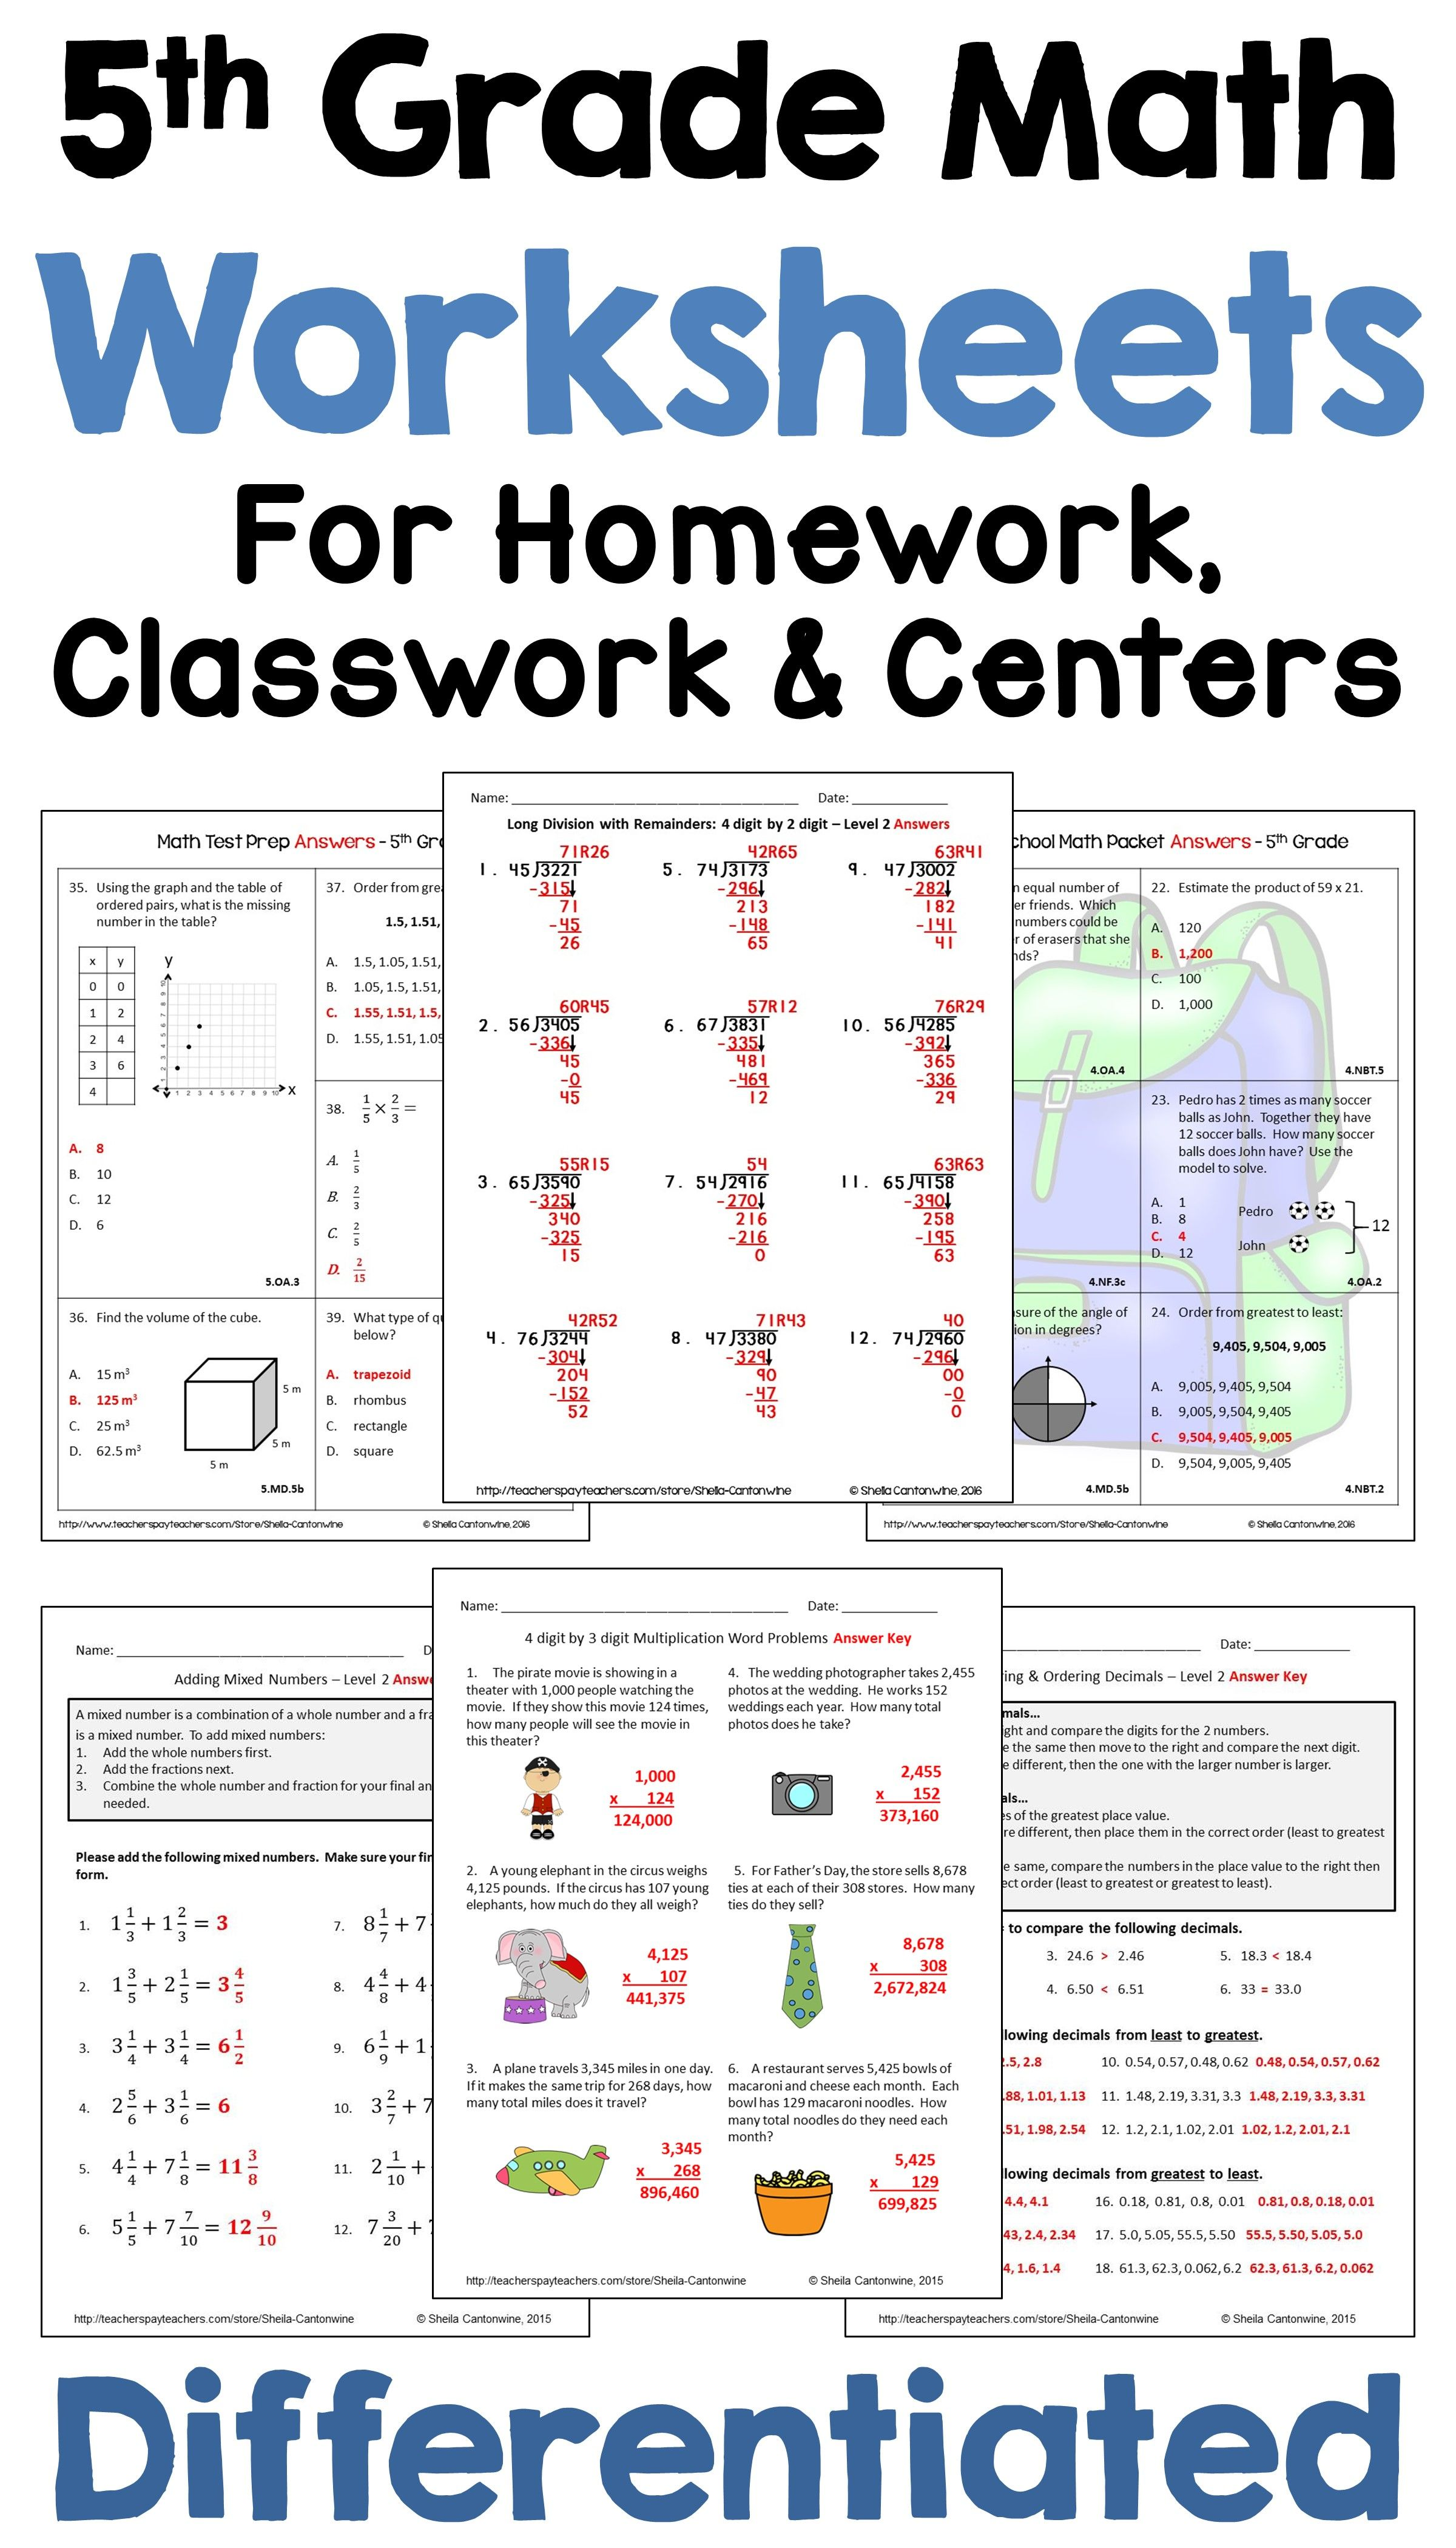 5th Grade Math Differentiated Worksheets For Homework Classwork And Centers 5th Grade Math Math Review Kids Math Worksheets